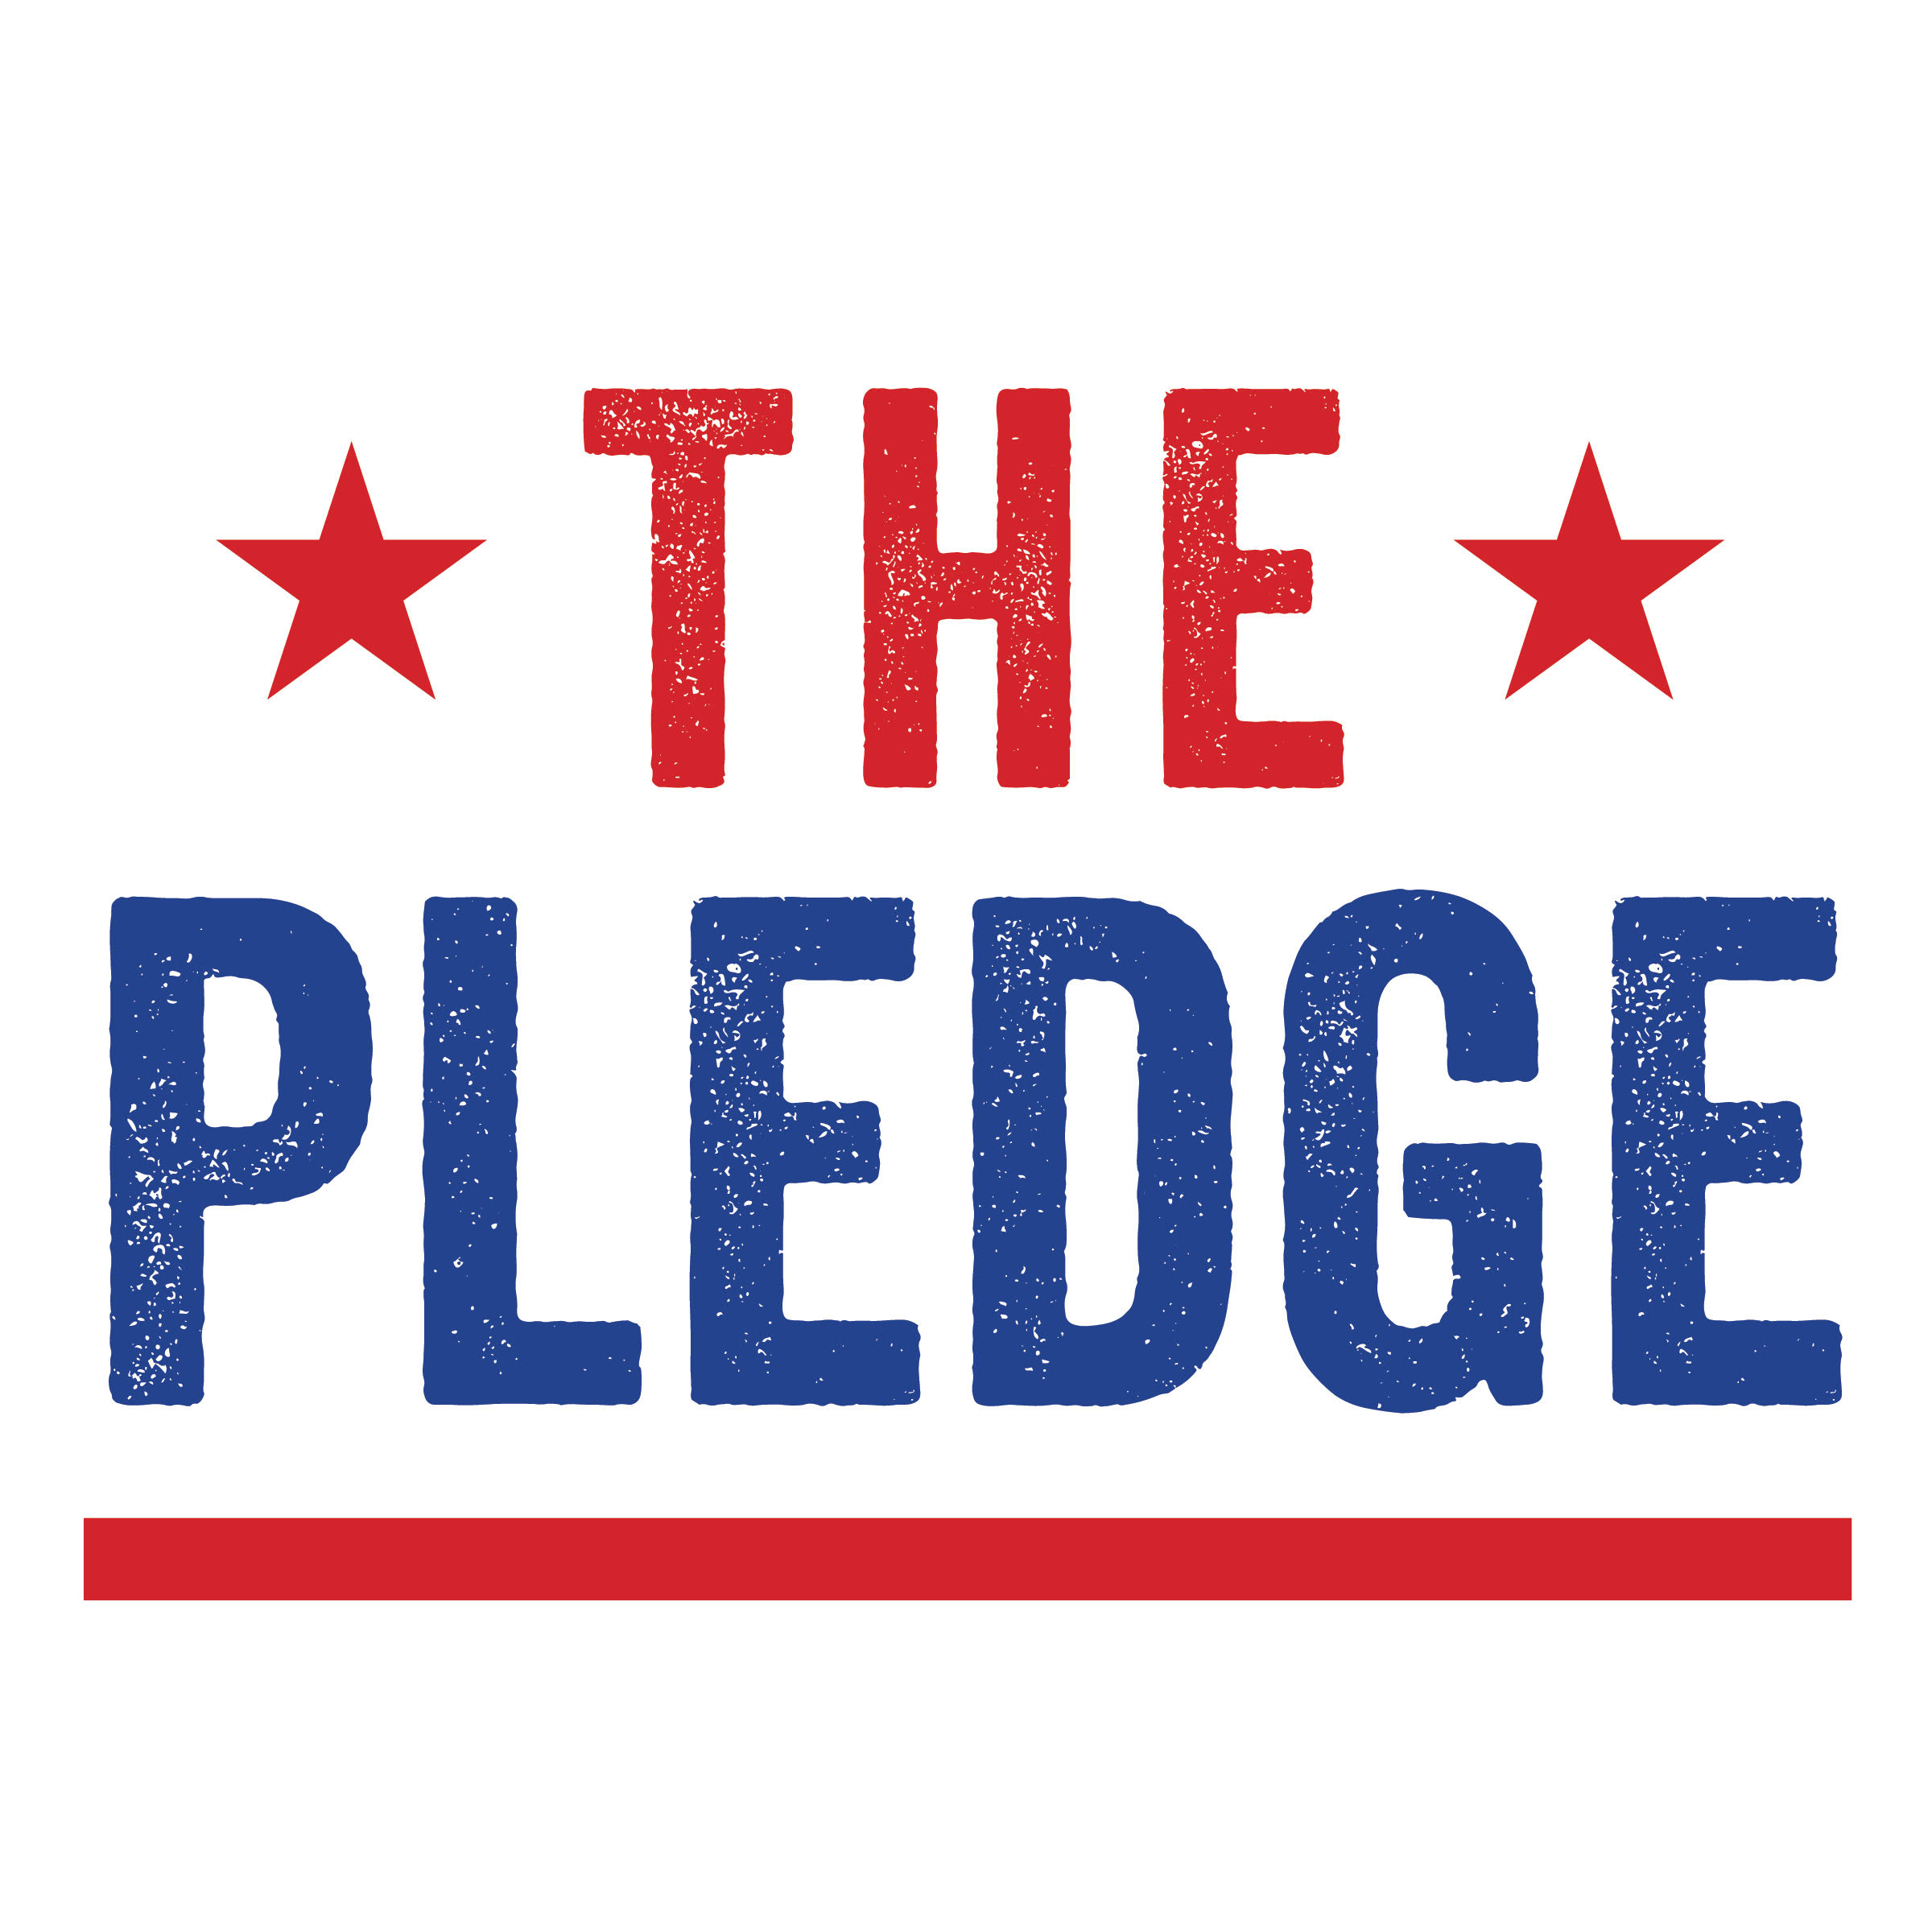 The Pledge Podcast explores political activism through short audio portraits. We call it The Pledge because it celebrates activism as a commitment to the hard work of democracy. Making this pledge means taking risks, speaking out, working hard and fighting day after day.